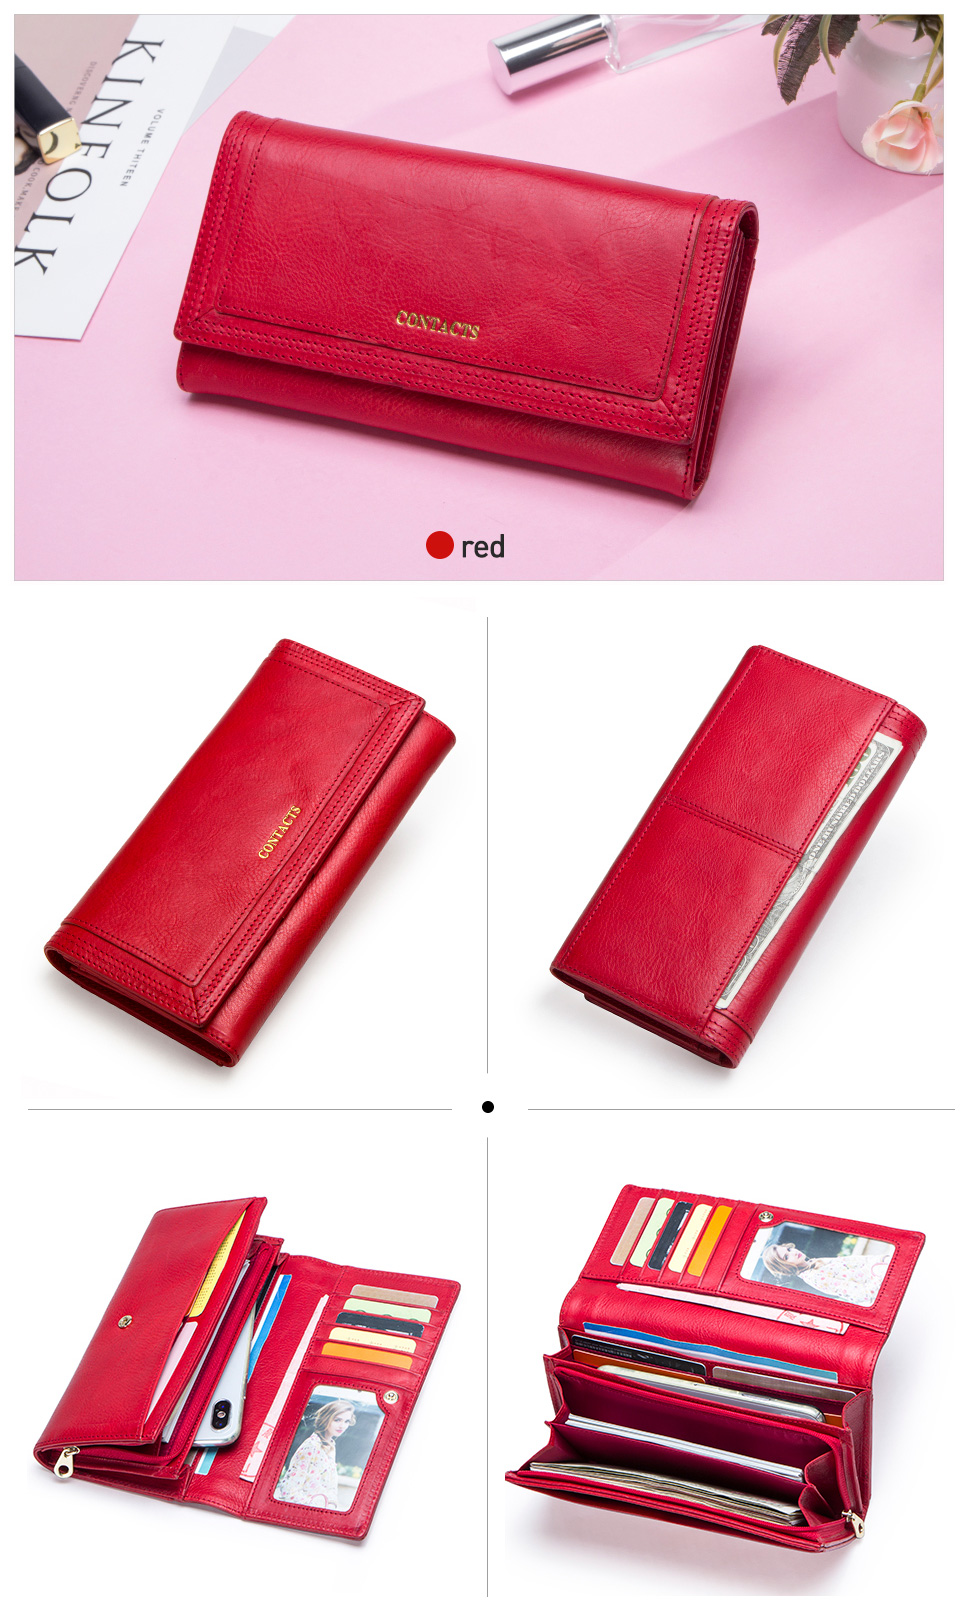 Clutch Wallets for Women Coin Purse Phone Pocket Genuine Leather Female Wallet Card Holder Money Bag gray 19*10*3.5cm 11